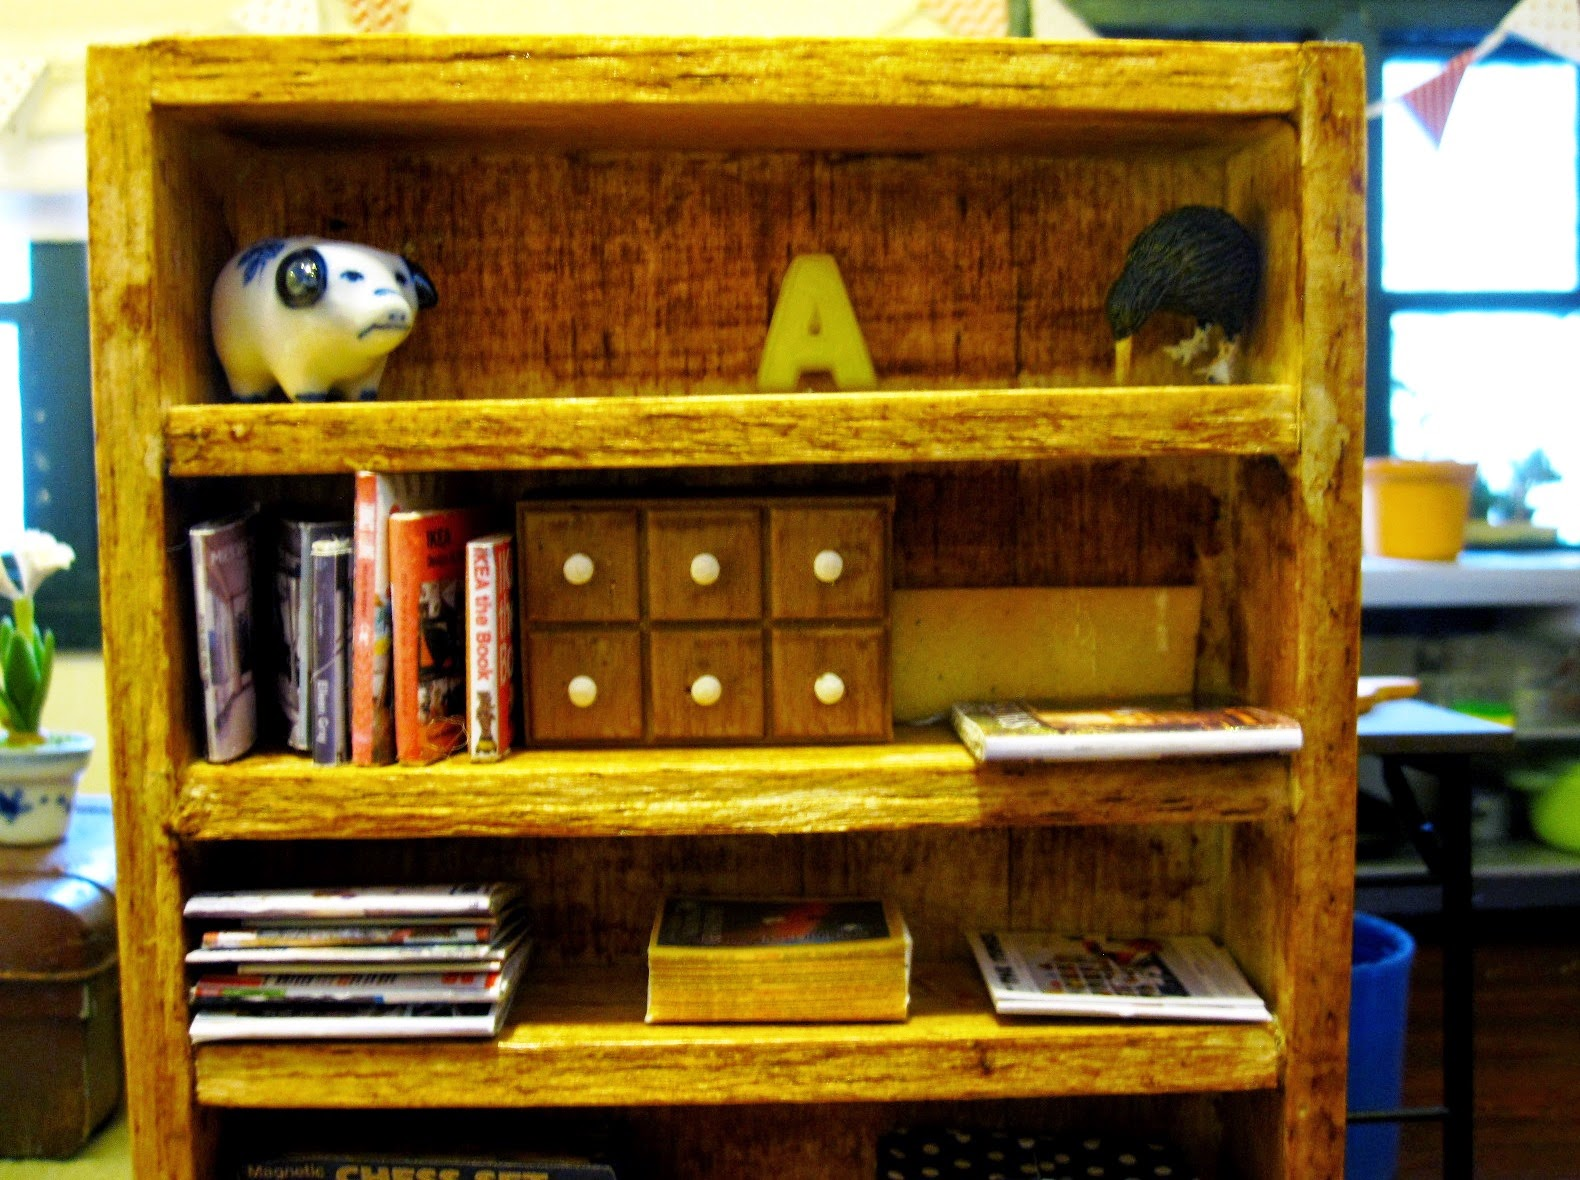 Modern dolls' house miniature bookshelf with books, magazines and a set of spice drawers on display.